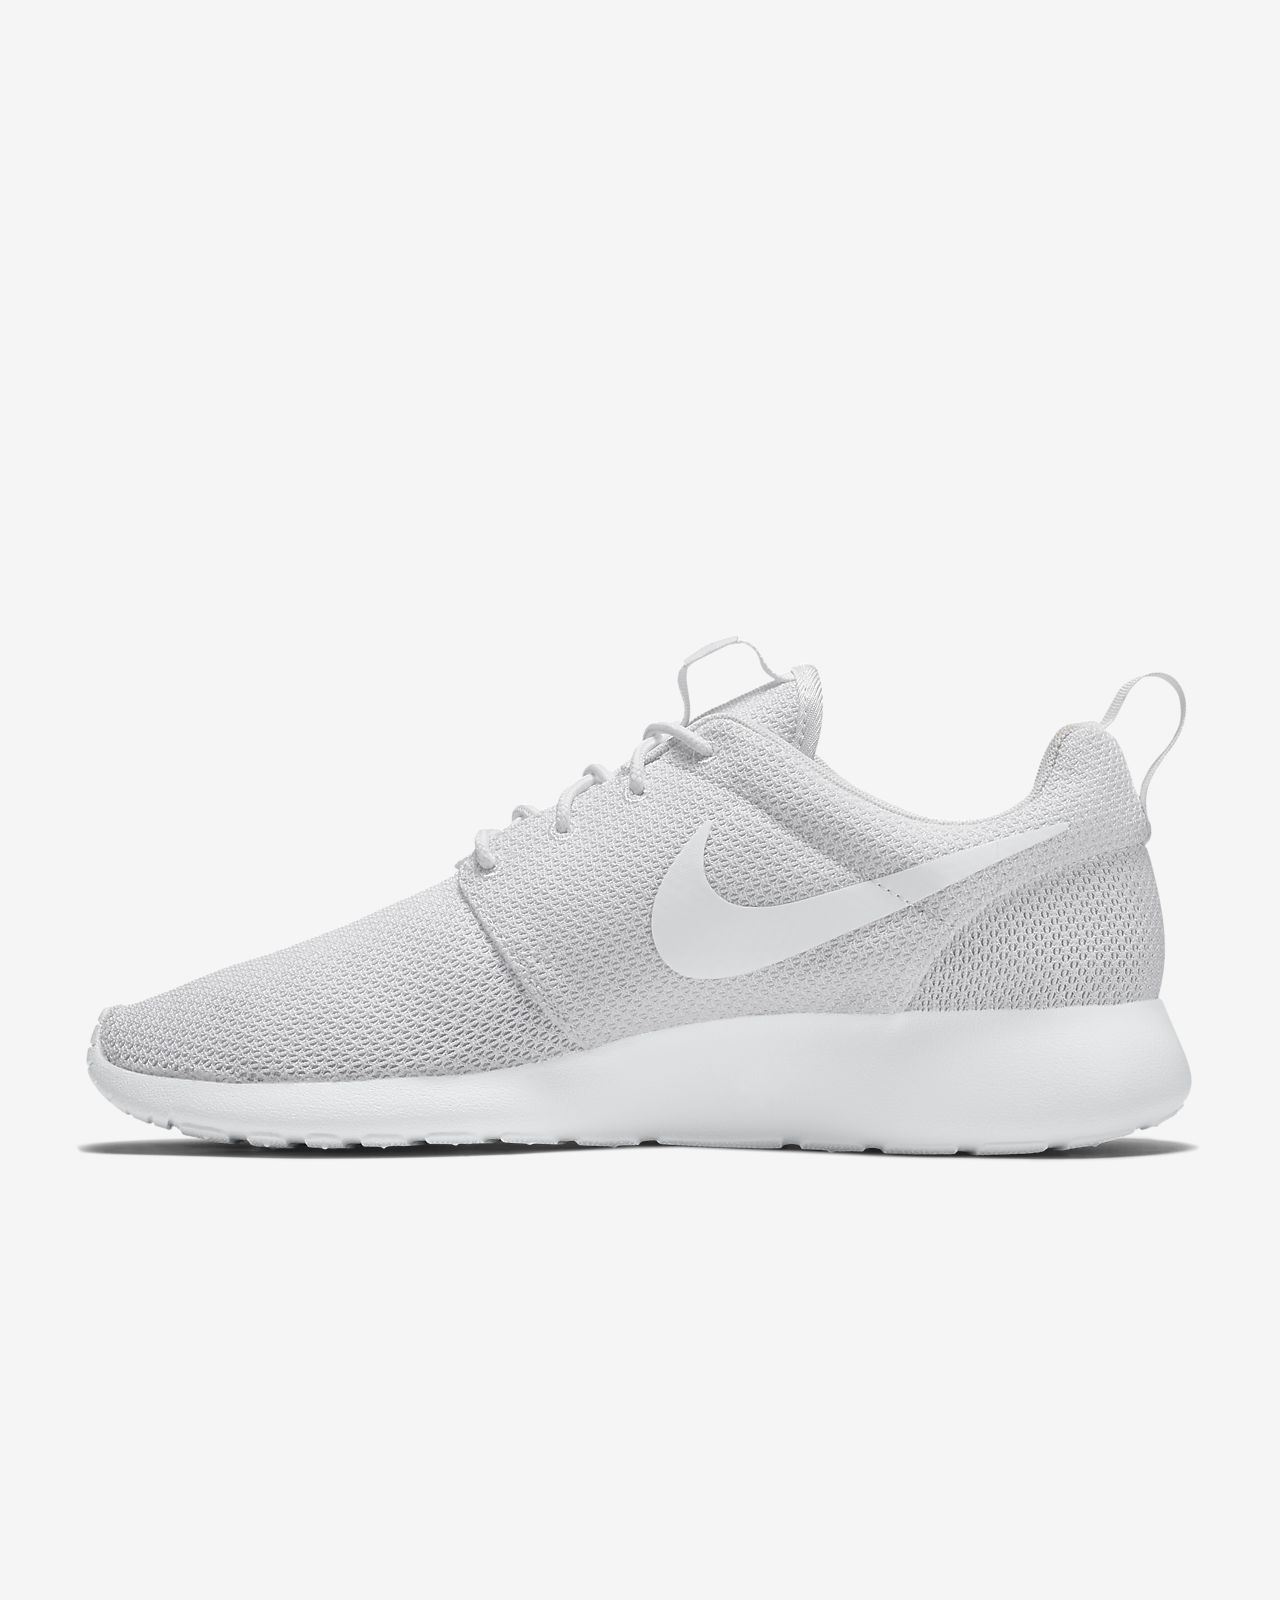 the latest 1e7ad a76c8 Nike Roshe One Men's Shoe